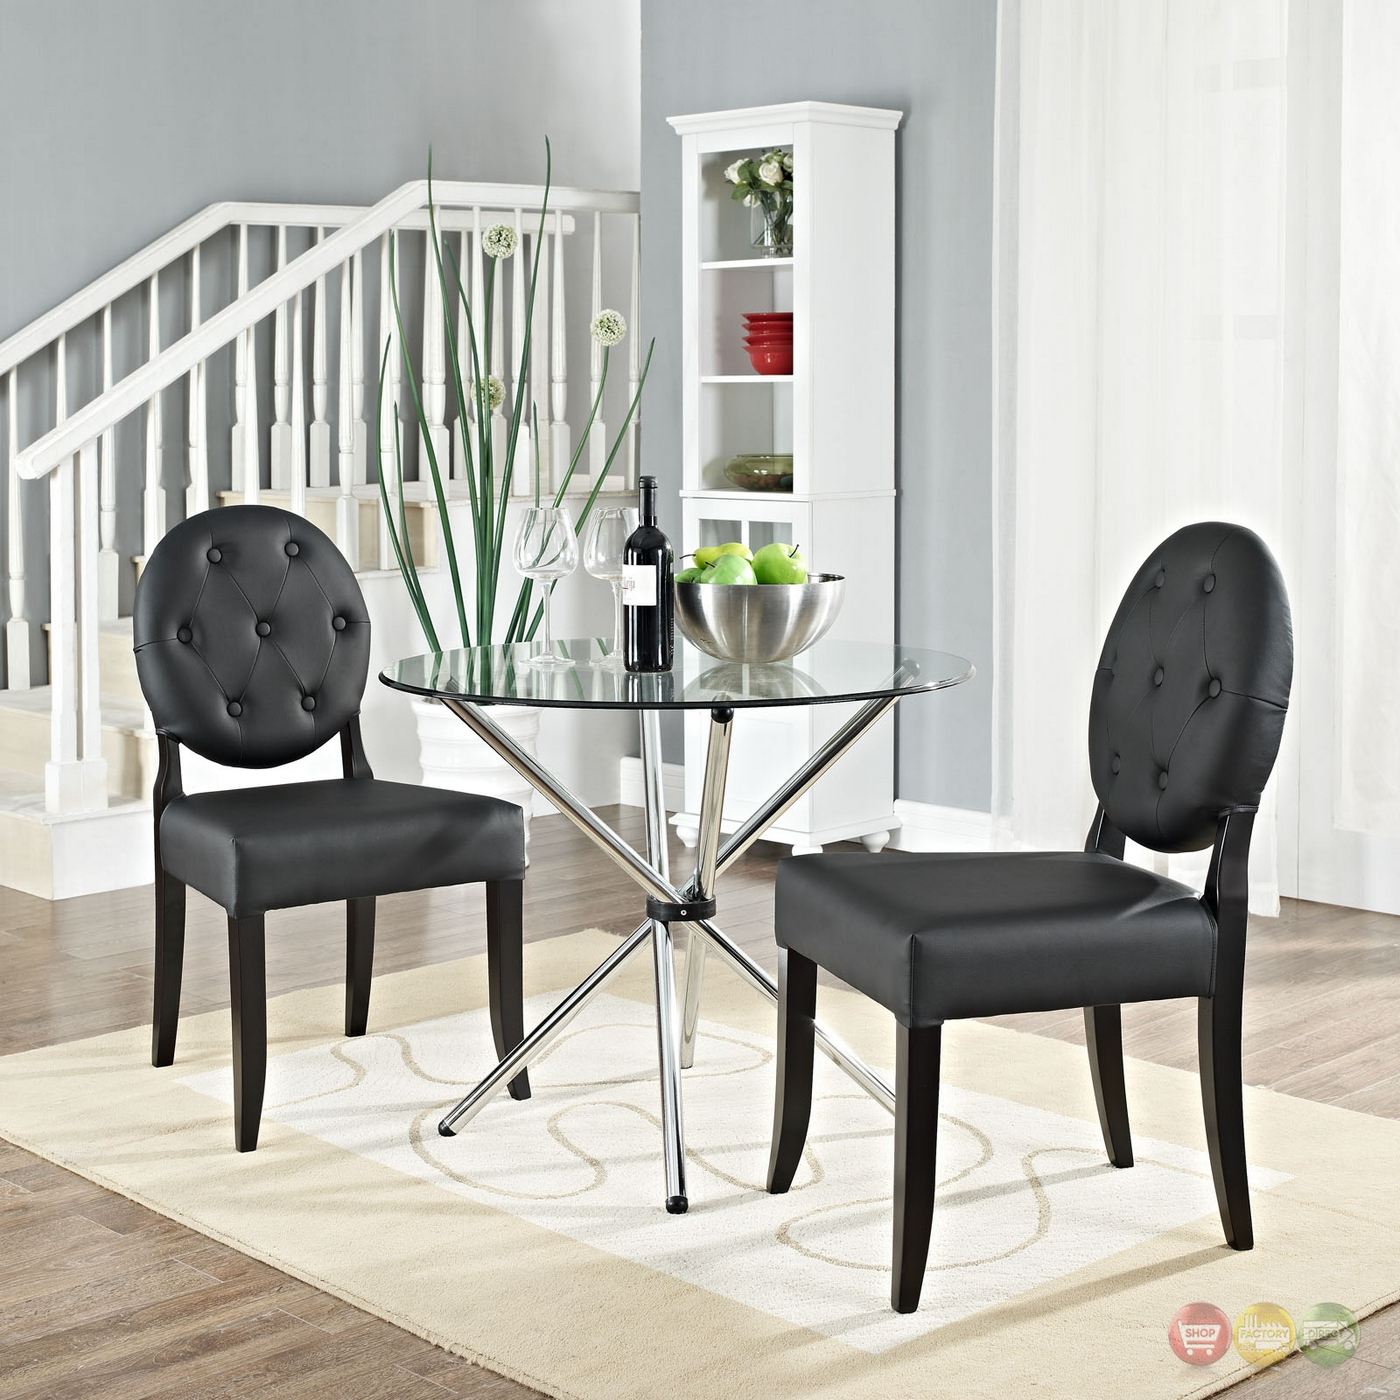 black tufted dining chair bedroom groupon button contemporary vinyl side